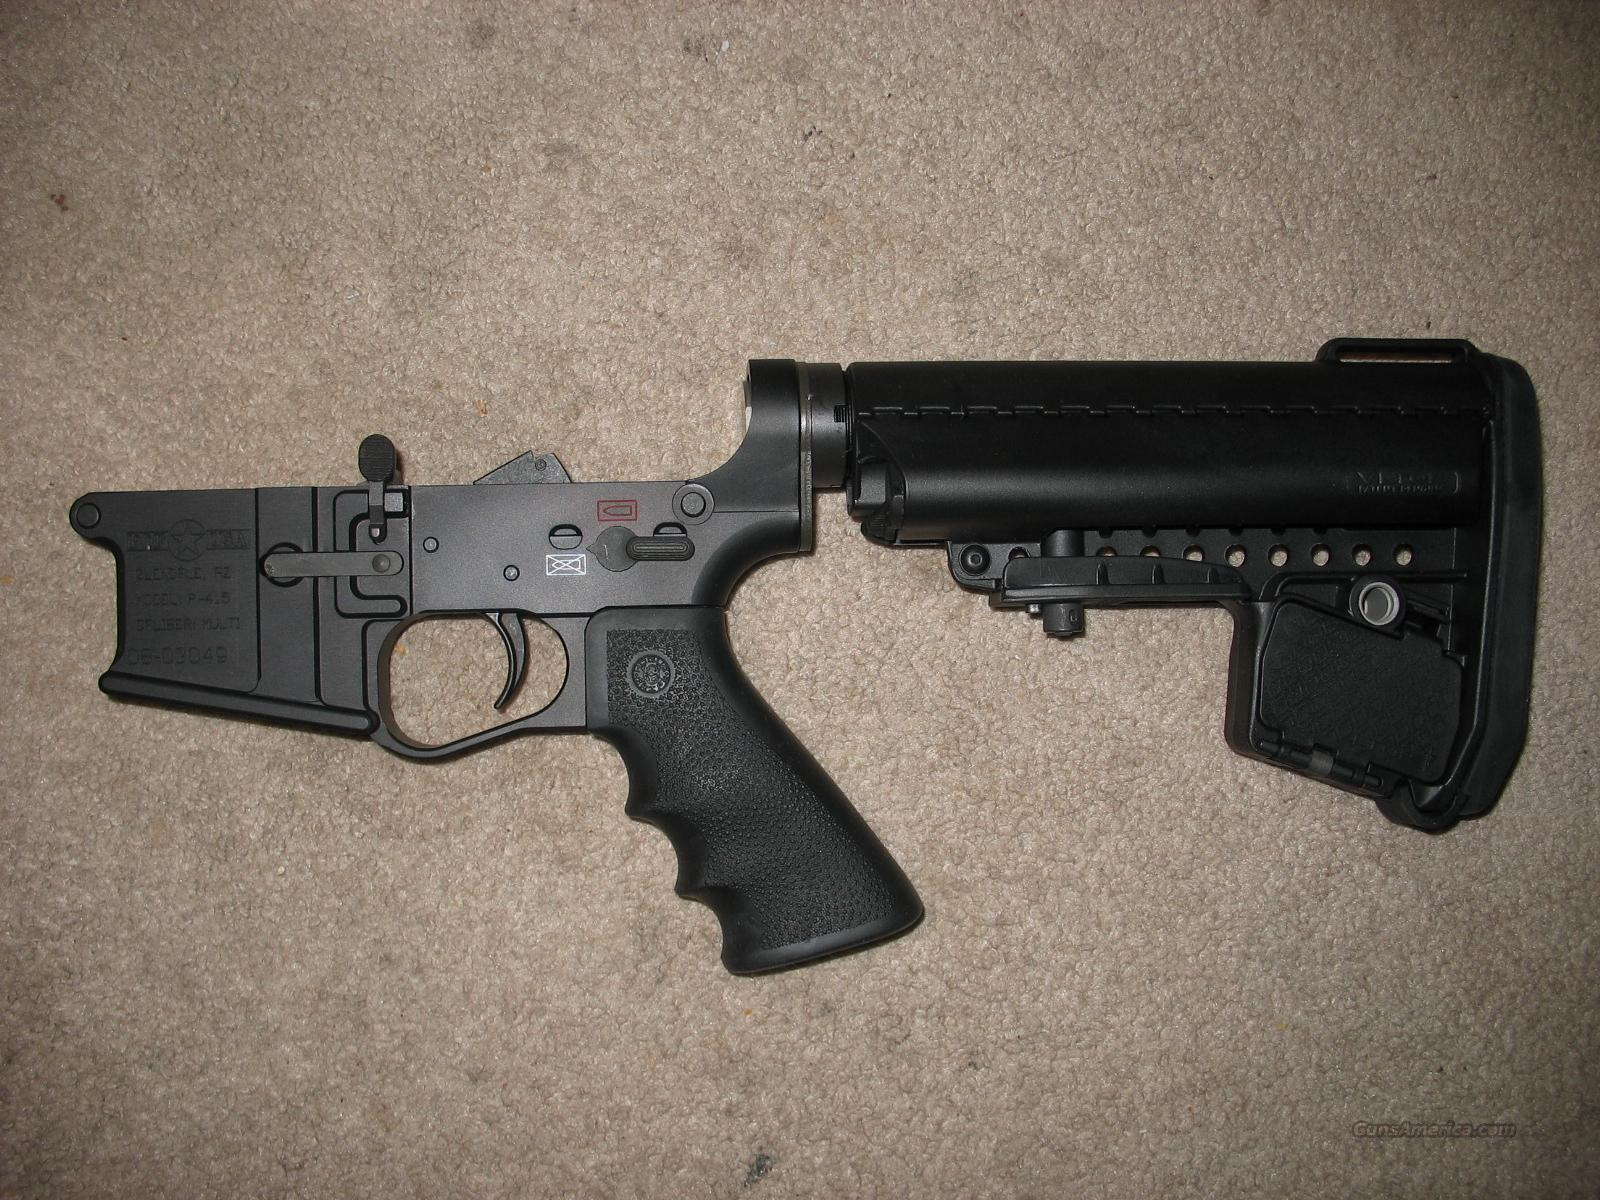 POF USA 415 lower, Bushmaster comp. trigger, Vltor stock, hogue grip   Guns > Rifles > AR-15 Rifles - Small Manufacturers > Lower Only